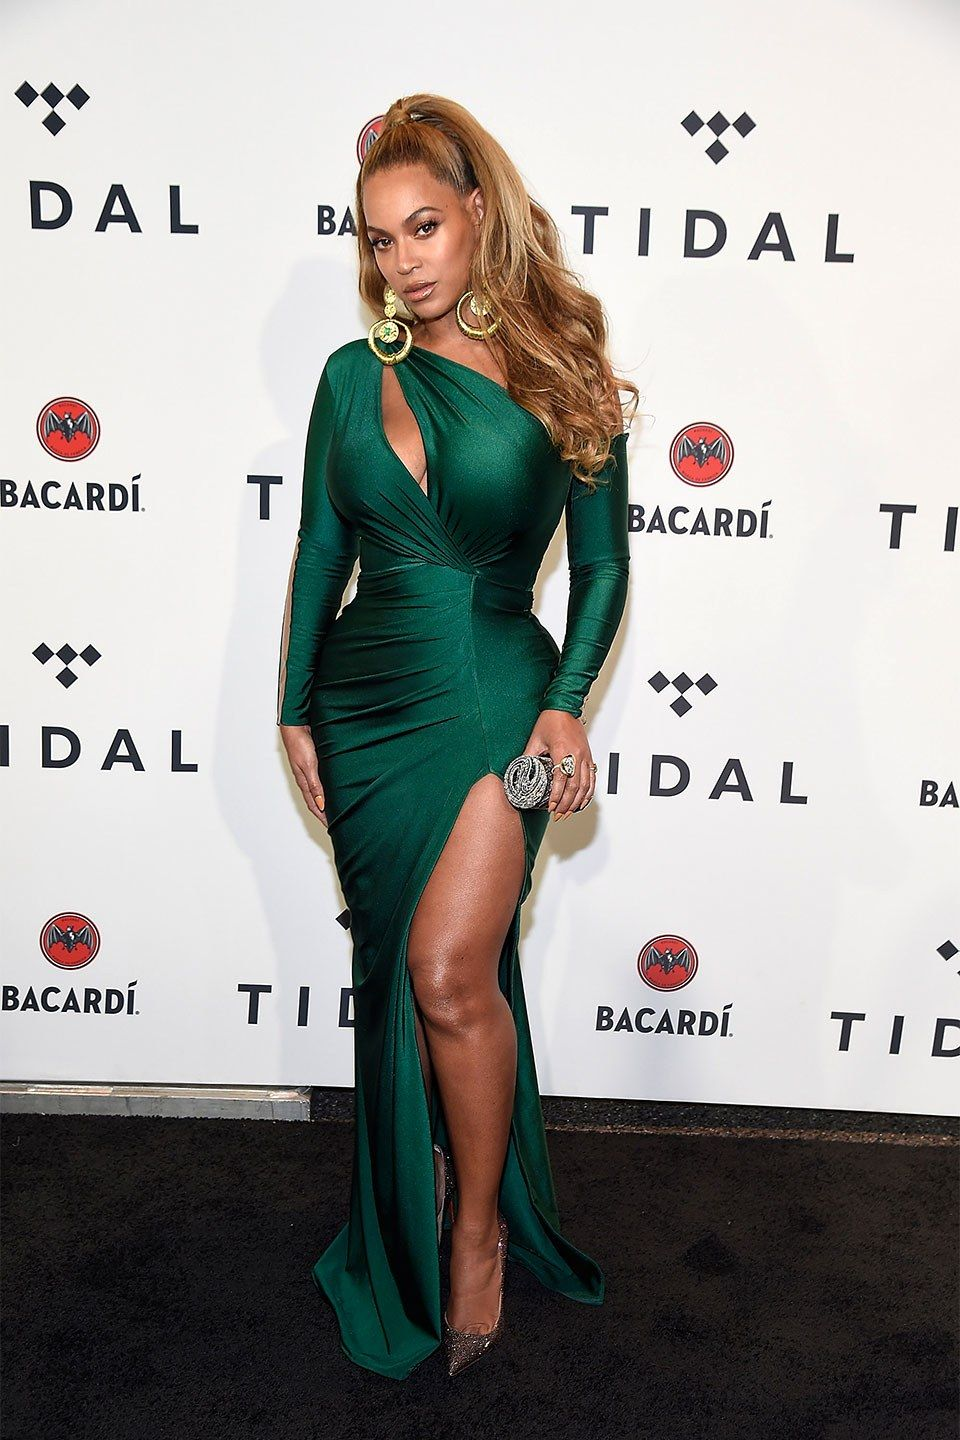 Beyoncé makes her first red carpet appearance since giving birth